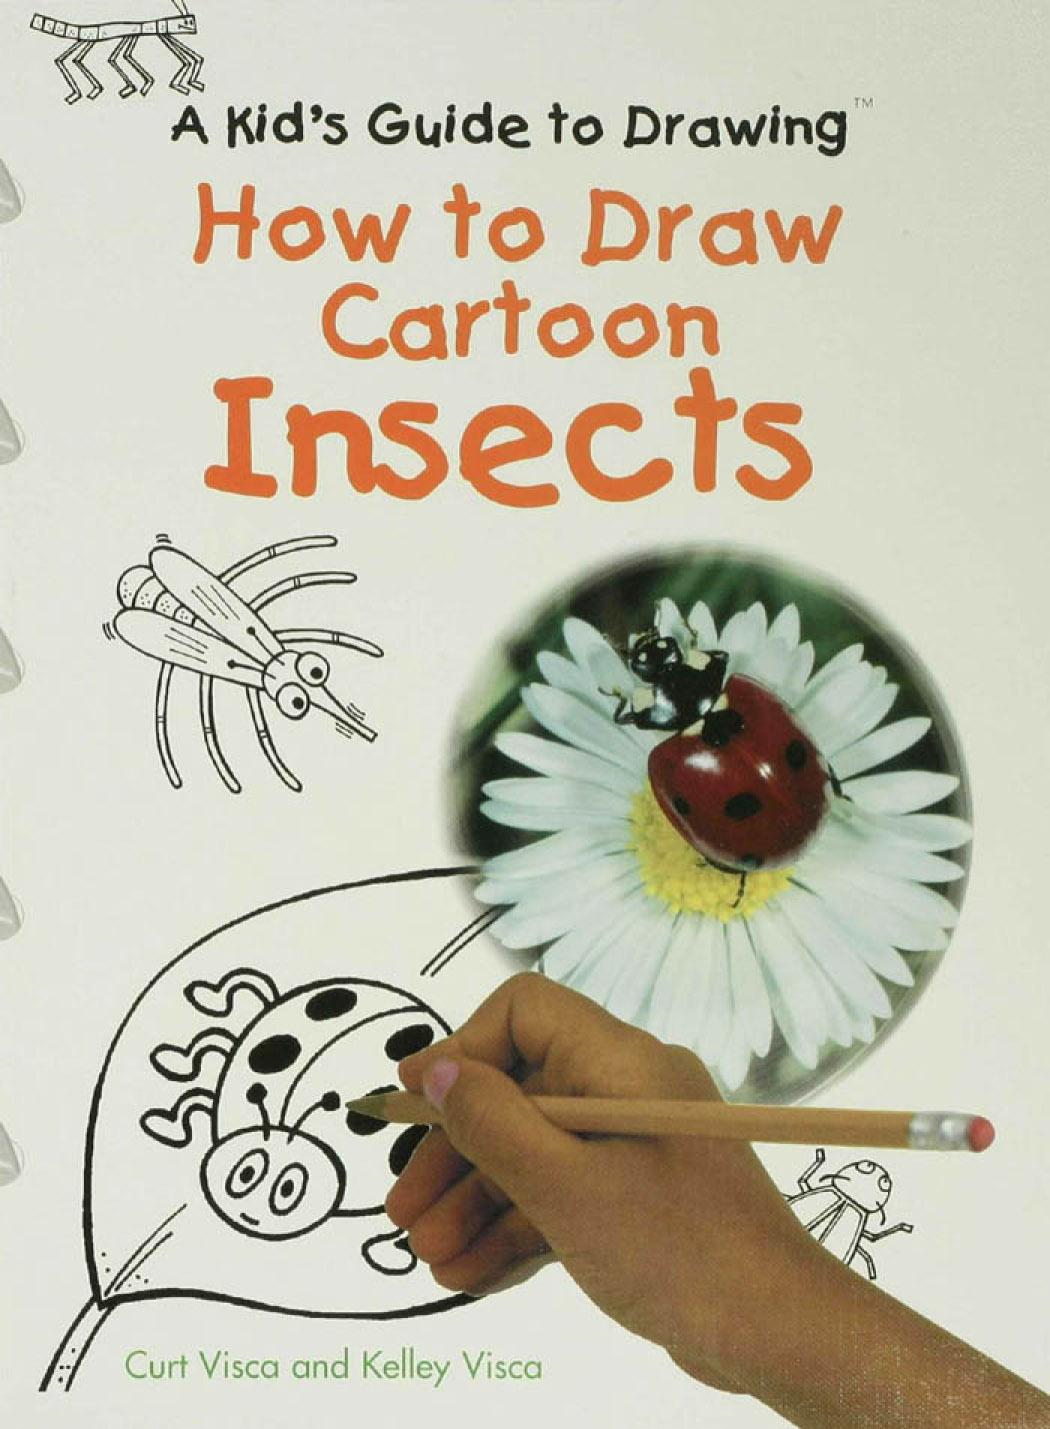 How to Draw Cartoon Insects